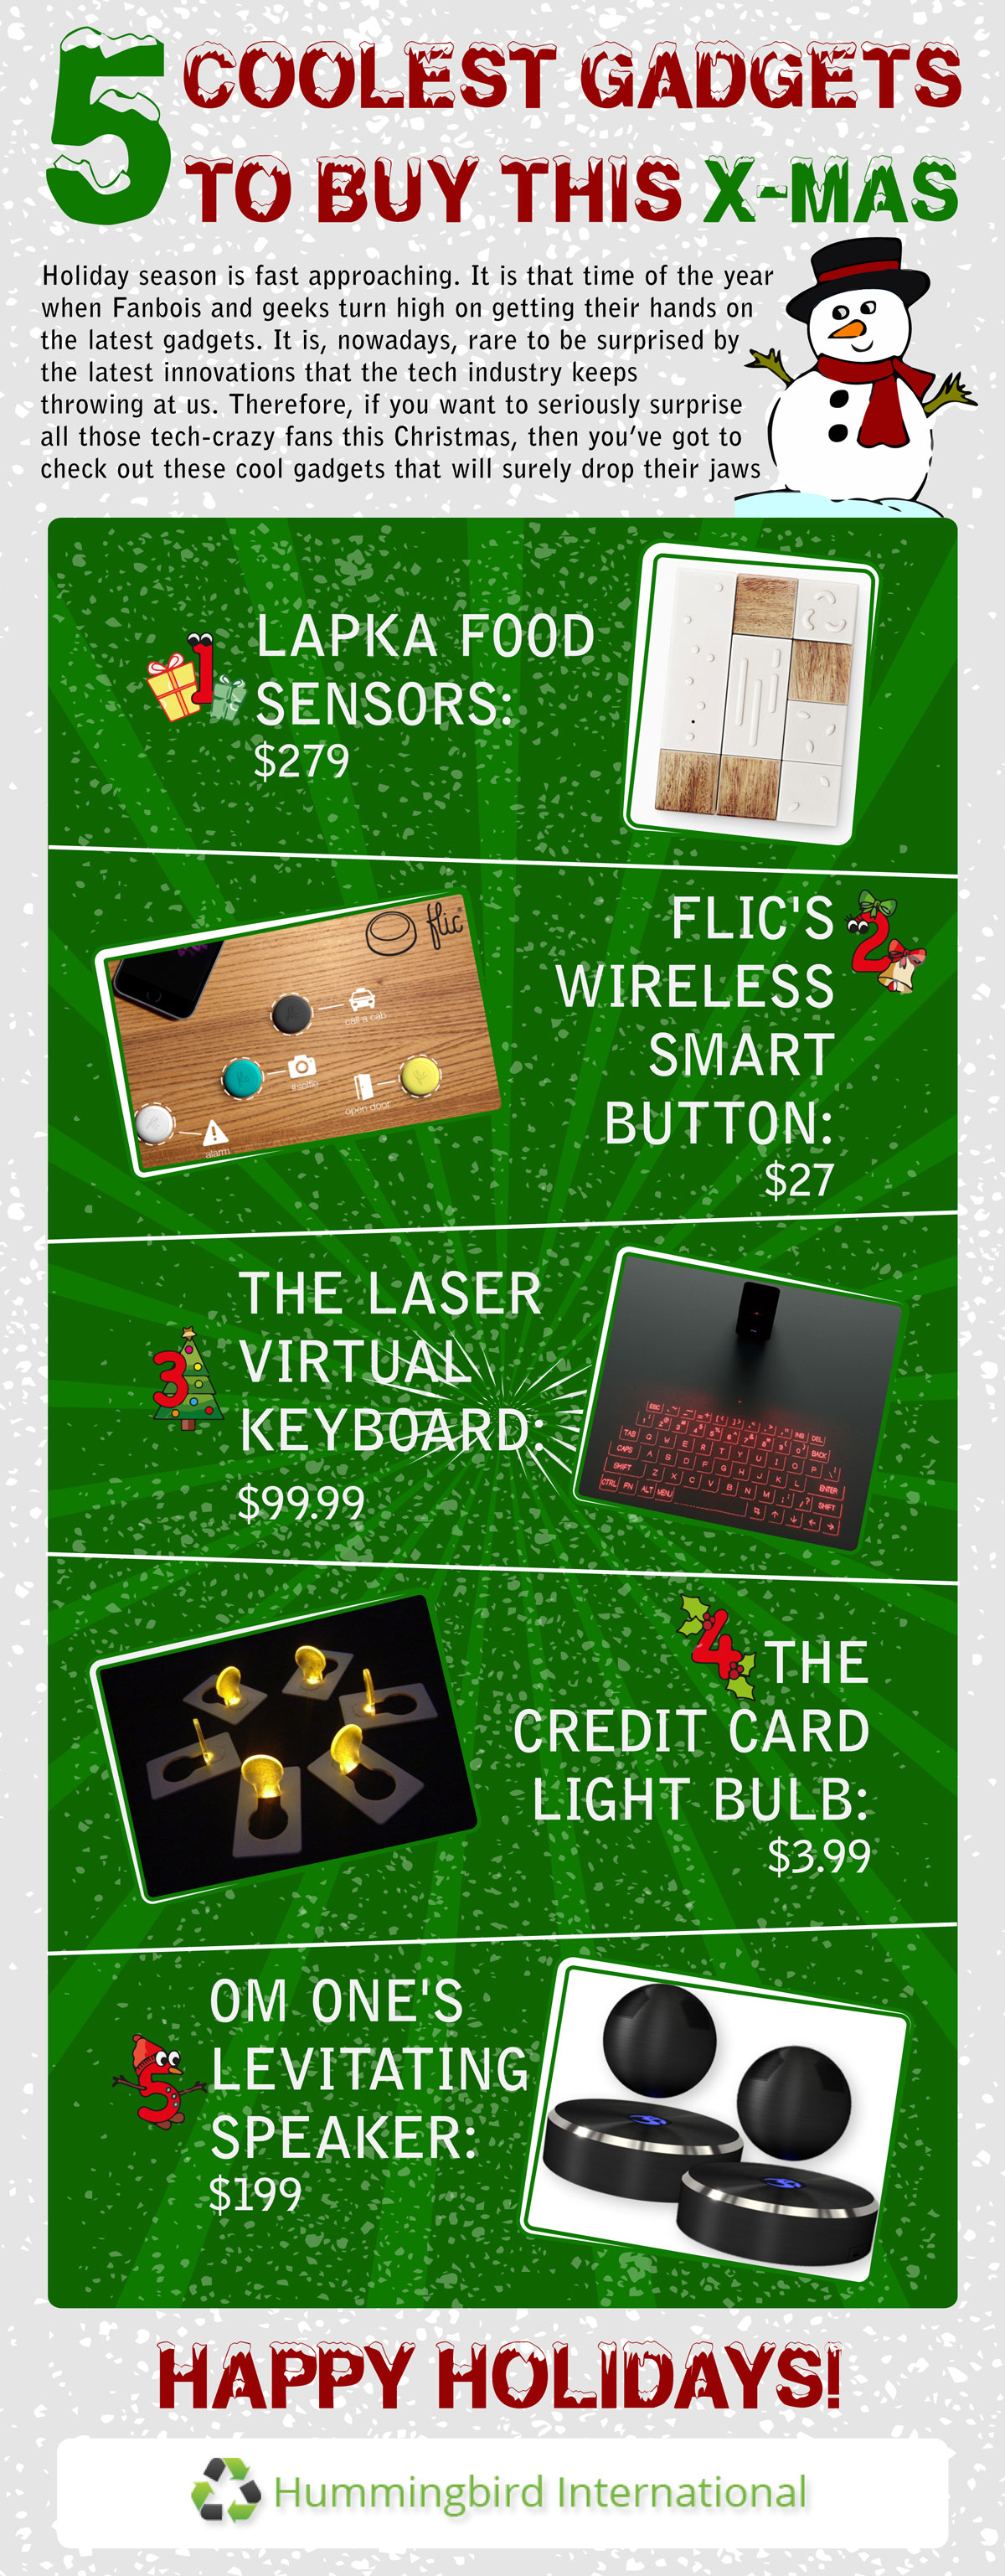 5 Coolest Gadgets To Buy This X